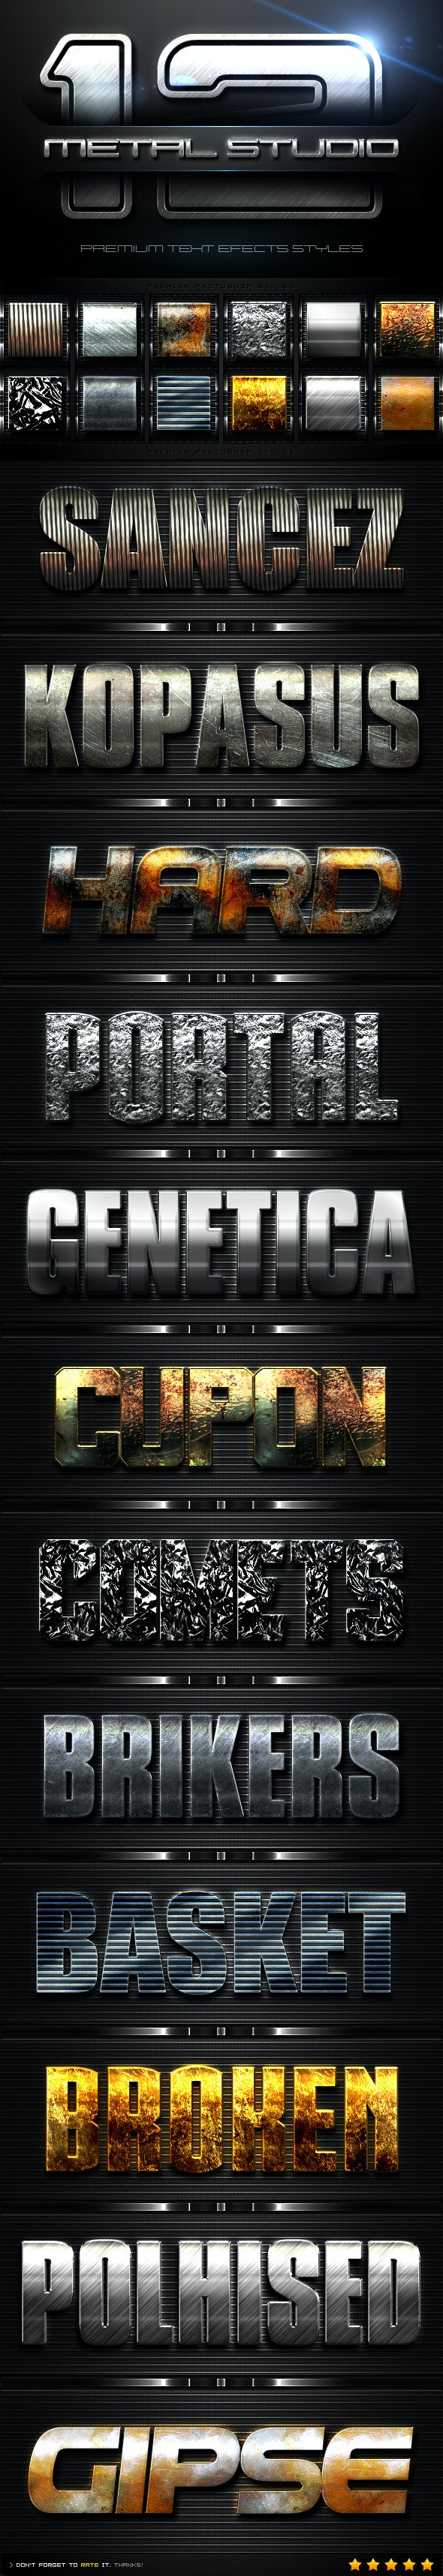 12 Metal Studio Styles - Text Effects Styles